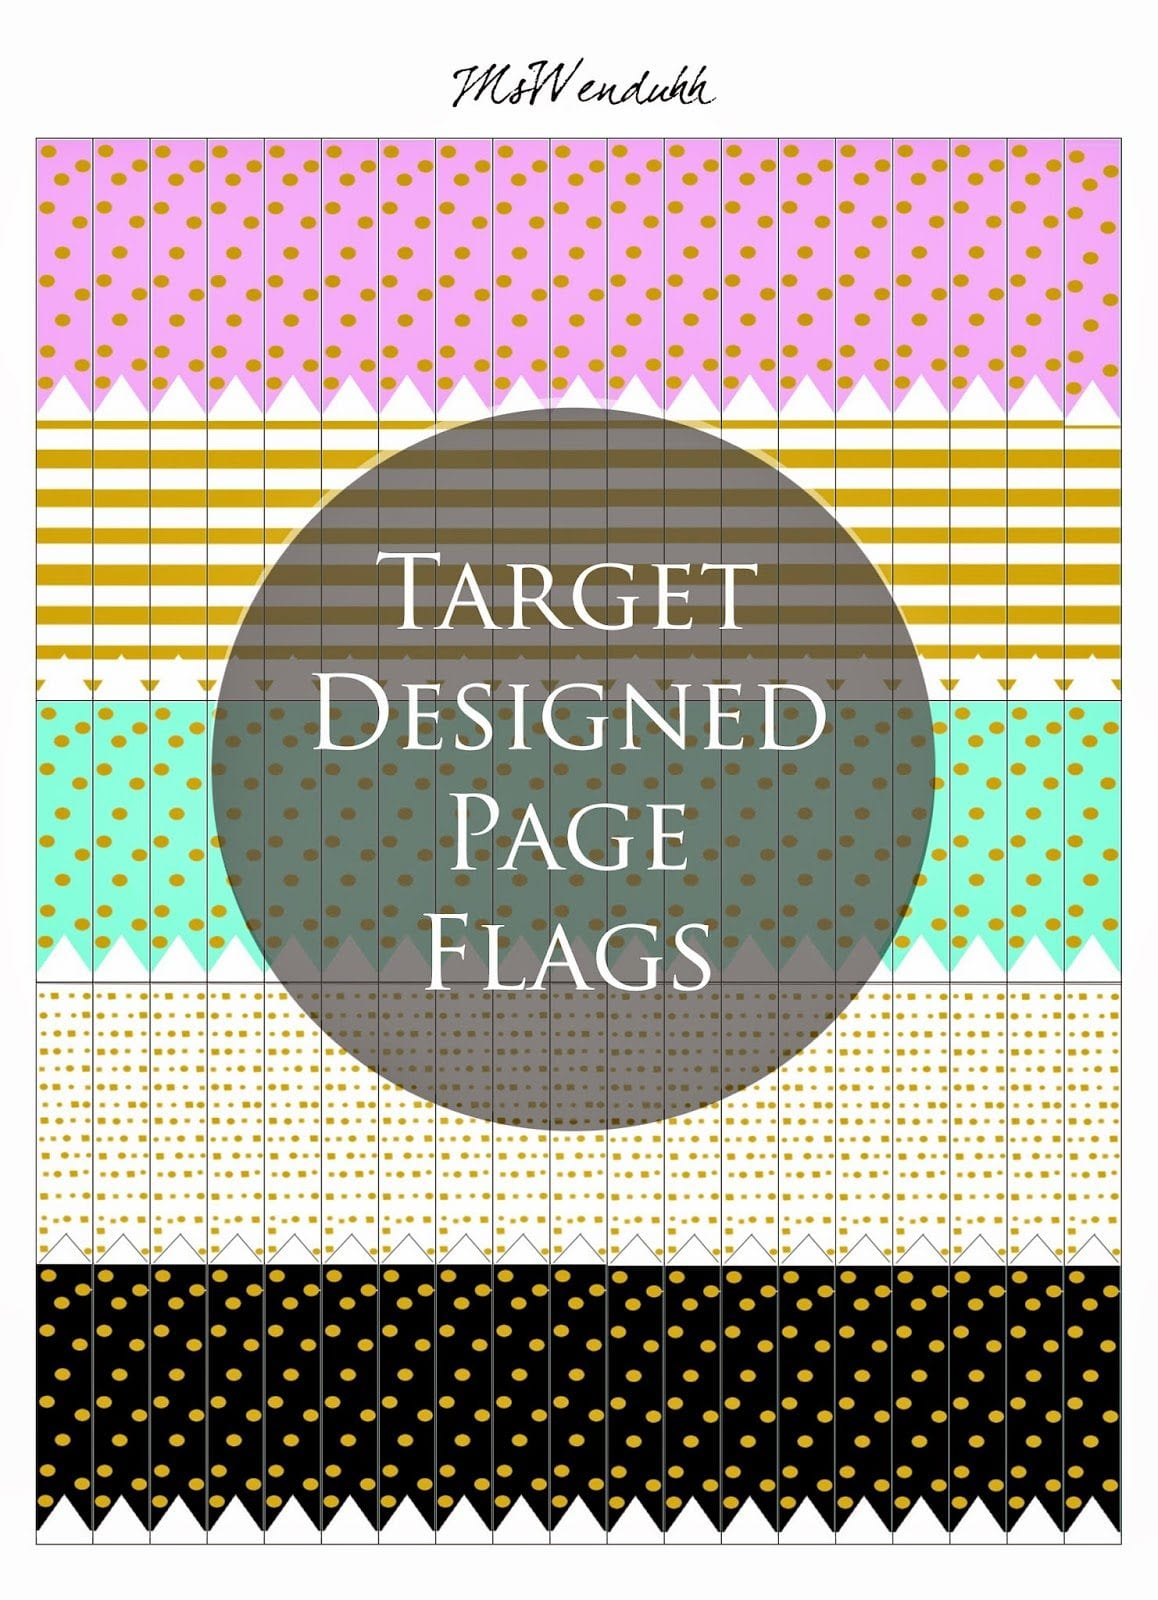 MsWenduhh-target-page-flags2